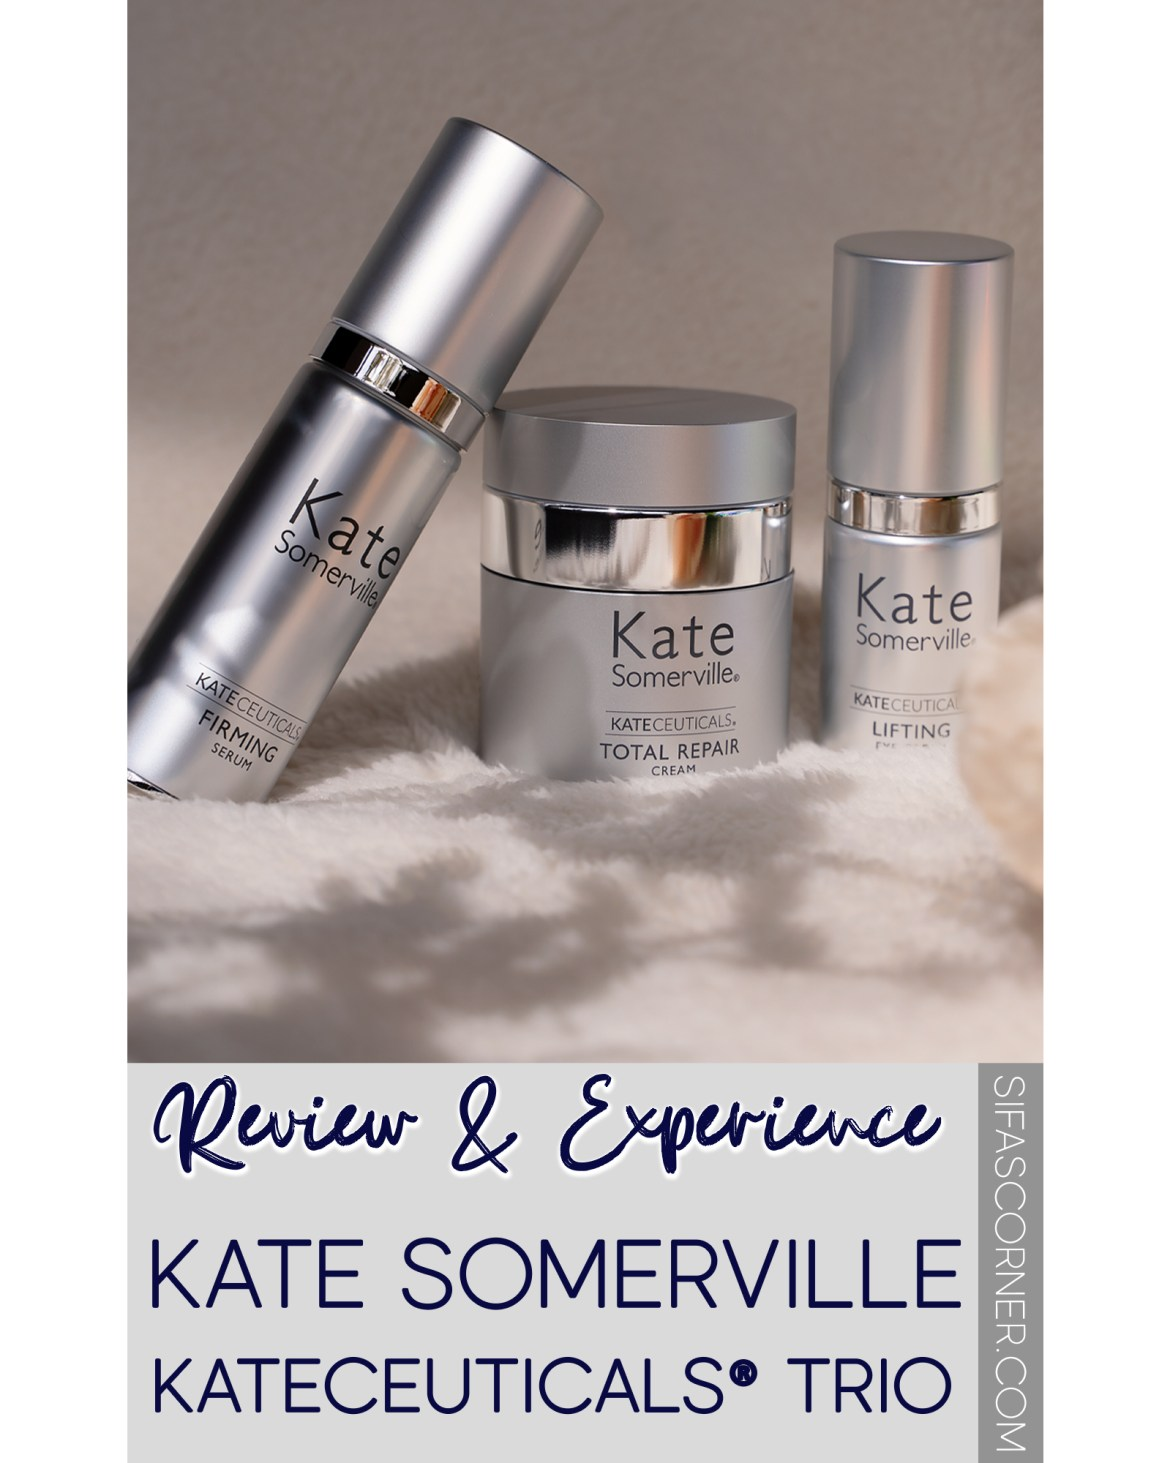 Kate Somerville KateCeuticals Trio-review and experience